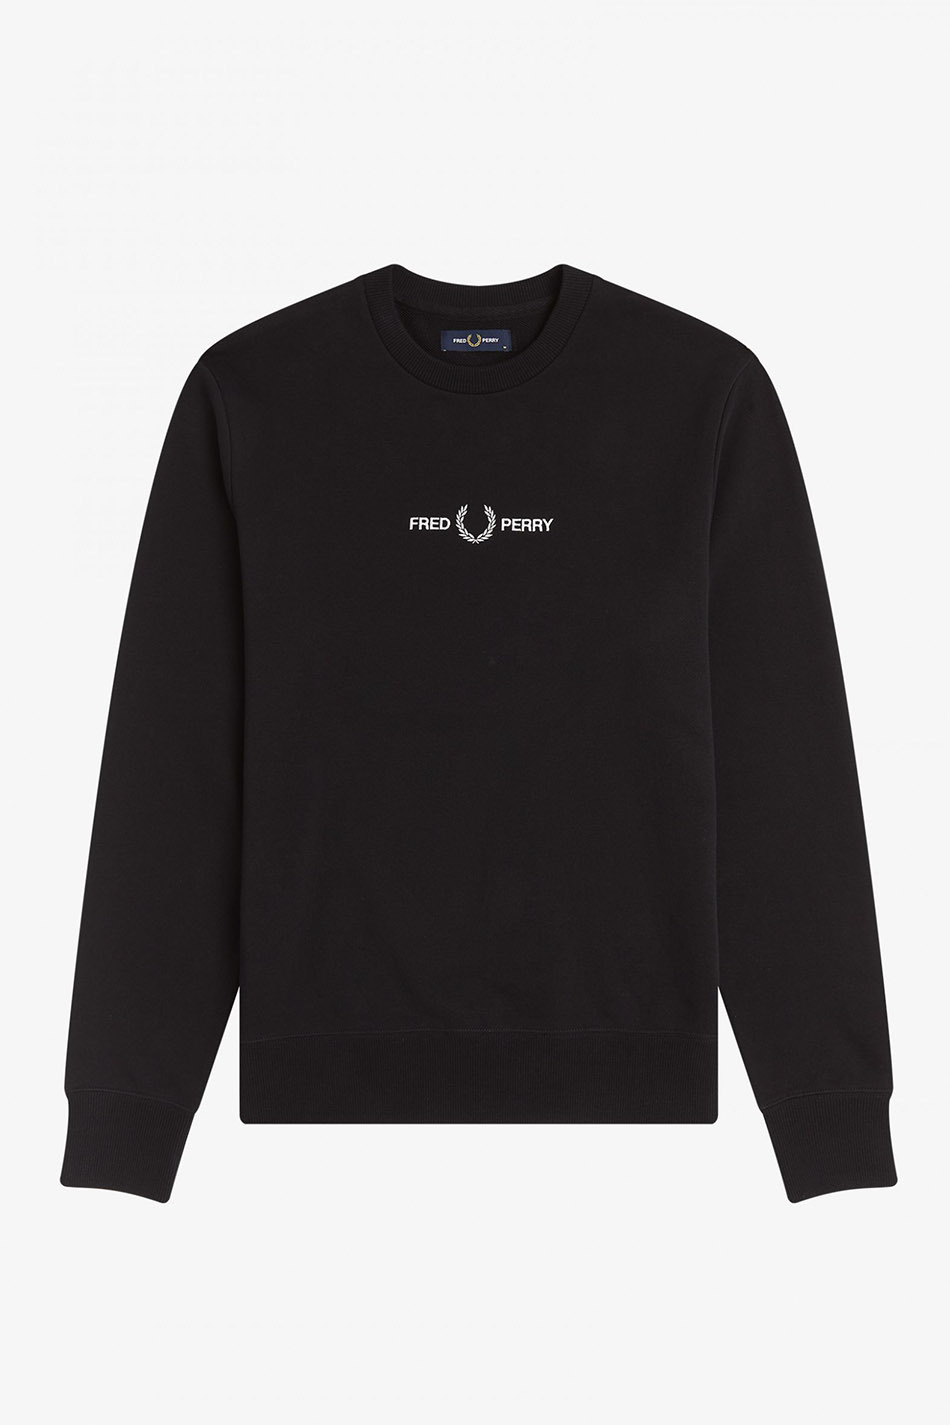 Black Fred Perry Embroidered Sweatshirt